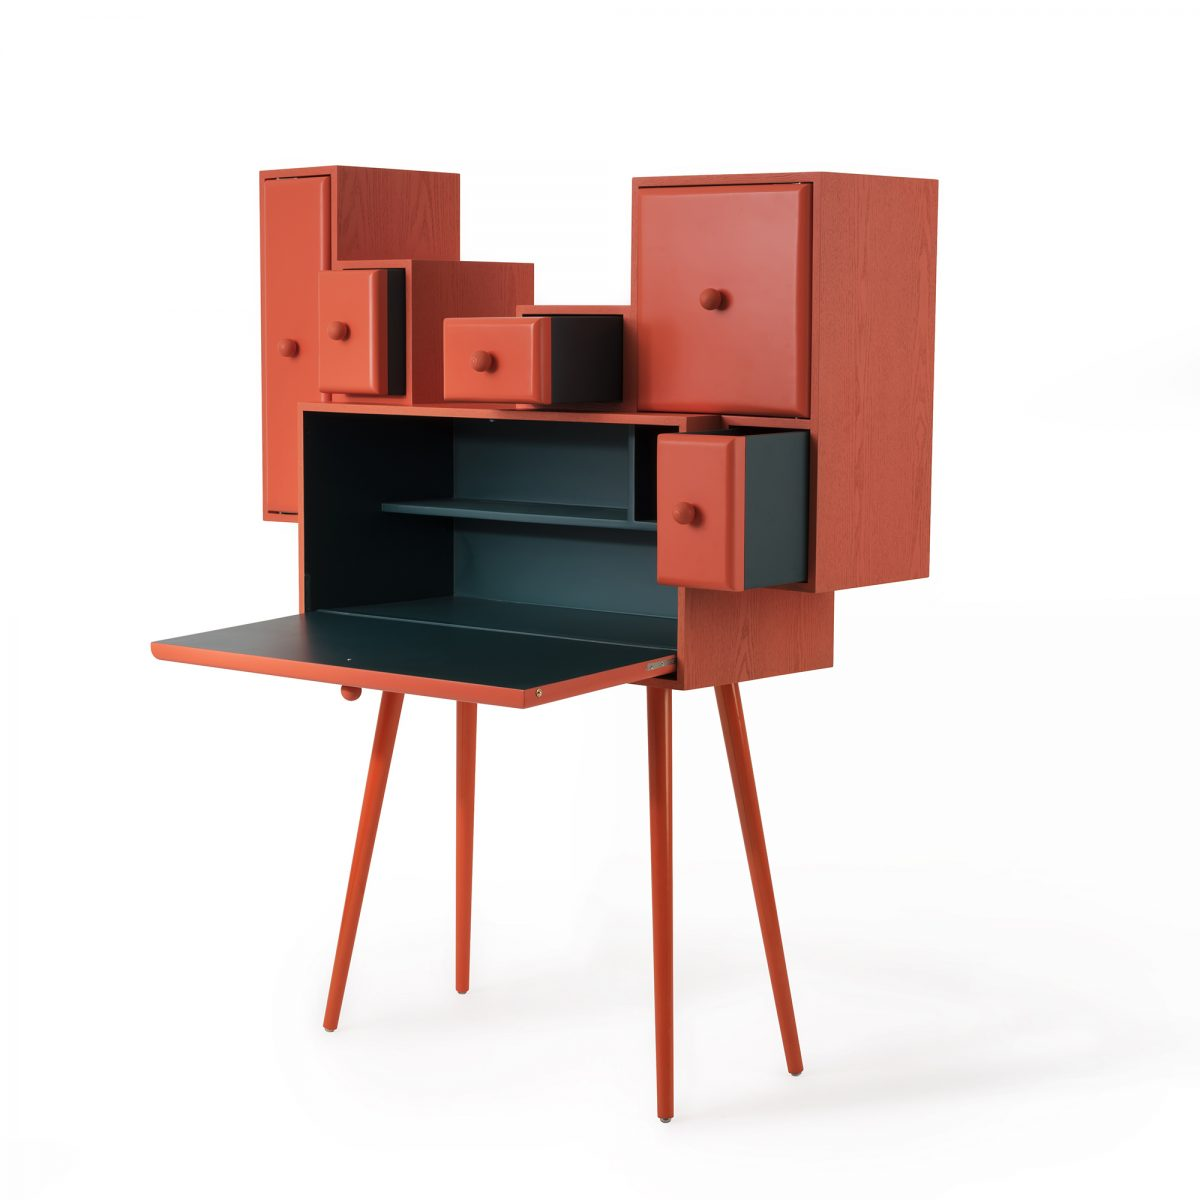 1-confidence-of-a-cloud-buffets&cabinets-cabinets-orange-open